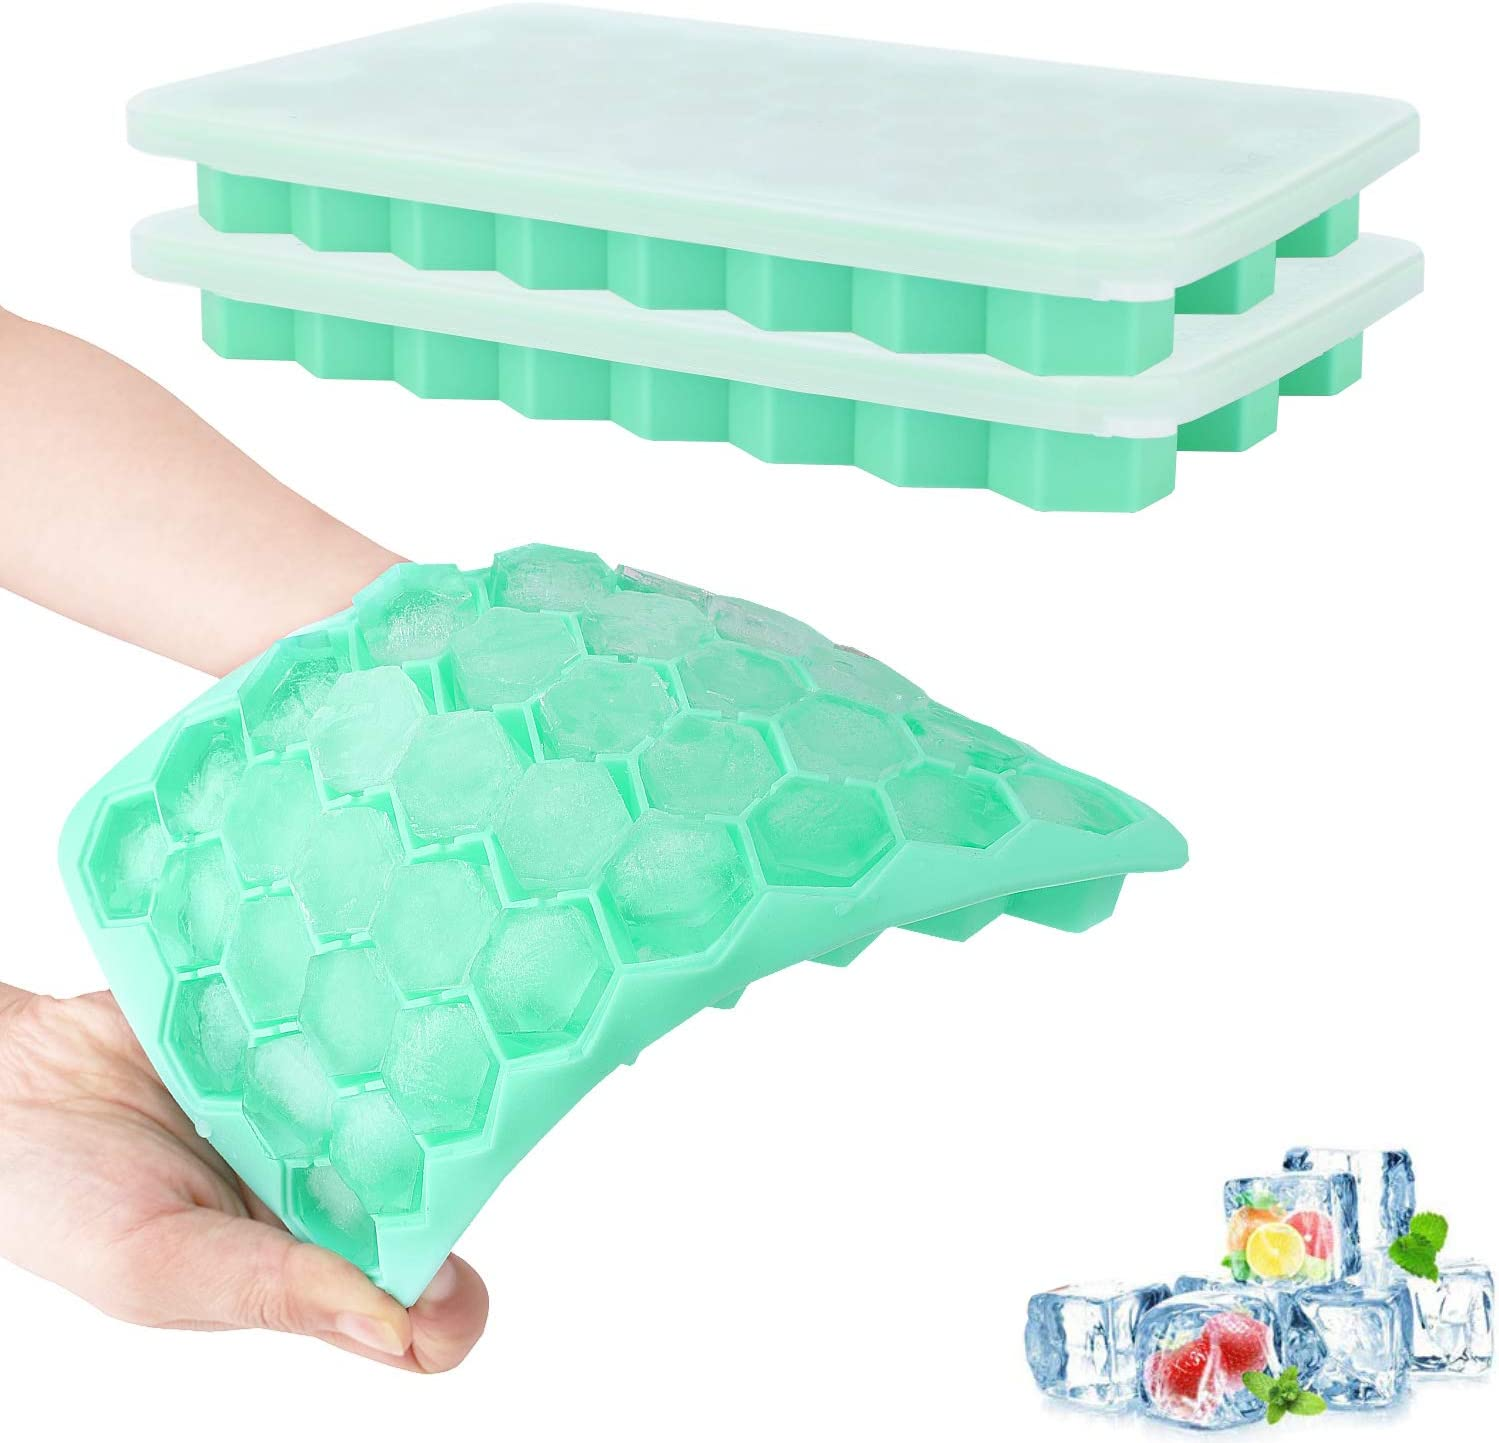 Nuovoware 2 Pack Ice Cube Trays, Totally 76-Ice Pop Molds Easy-Release Silicone Ice Pop Makers with Spill-Resistant Removable Lid, Kitchen Gadget, Stackable & Flexible - Cyan Blue